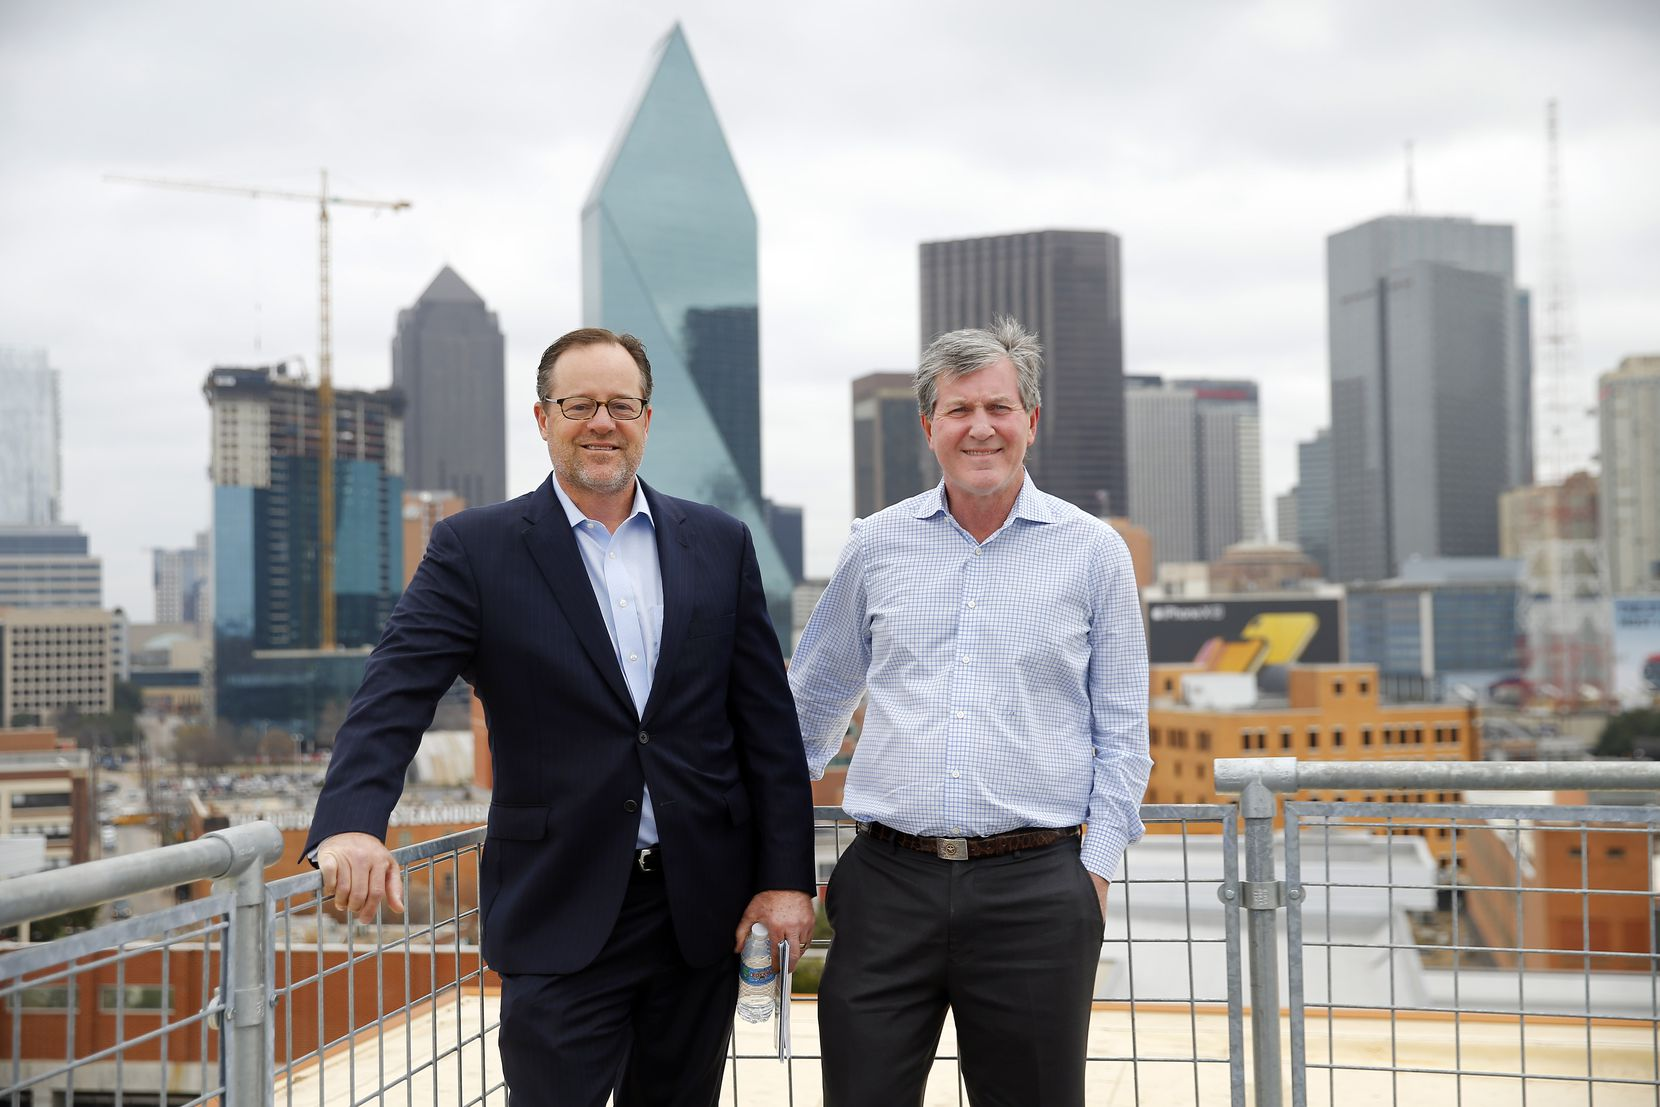 The newly constructed Luminary has sweeping panoramic views of downtown, Uptown and the Trinity River in Dallas. It also has an eighth-floor rooftop view, where Crescent Real Estate's John Zogg (right) and JLL's James Esquivel are pictured.